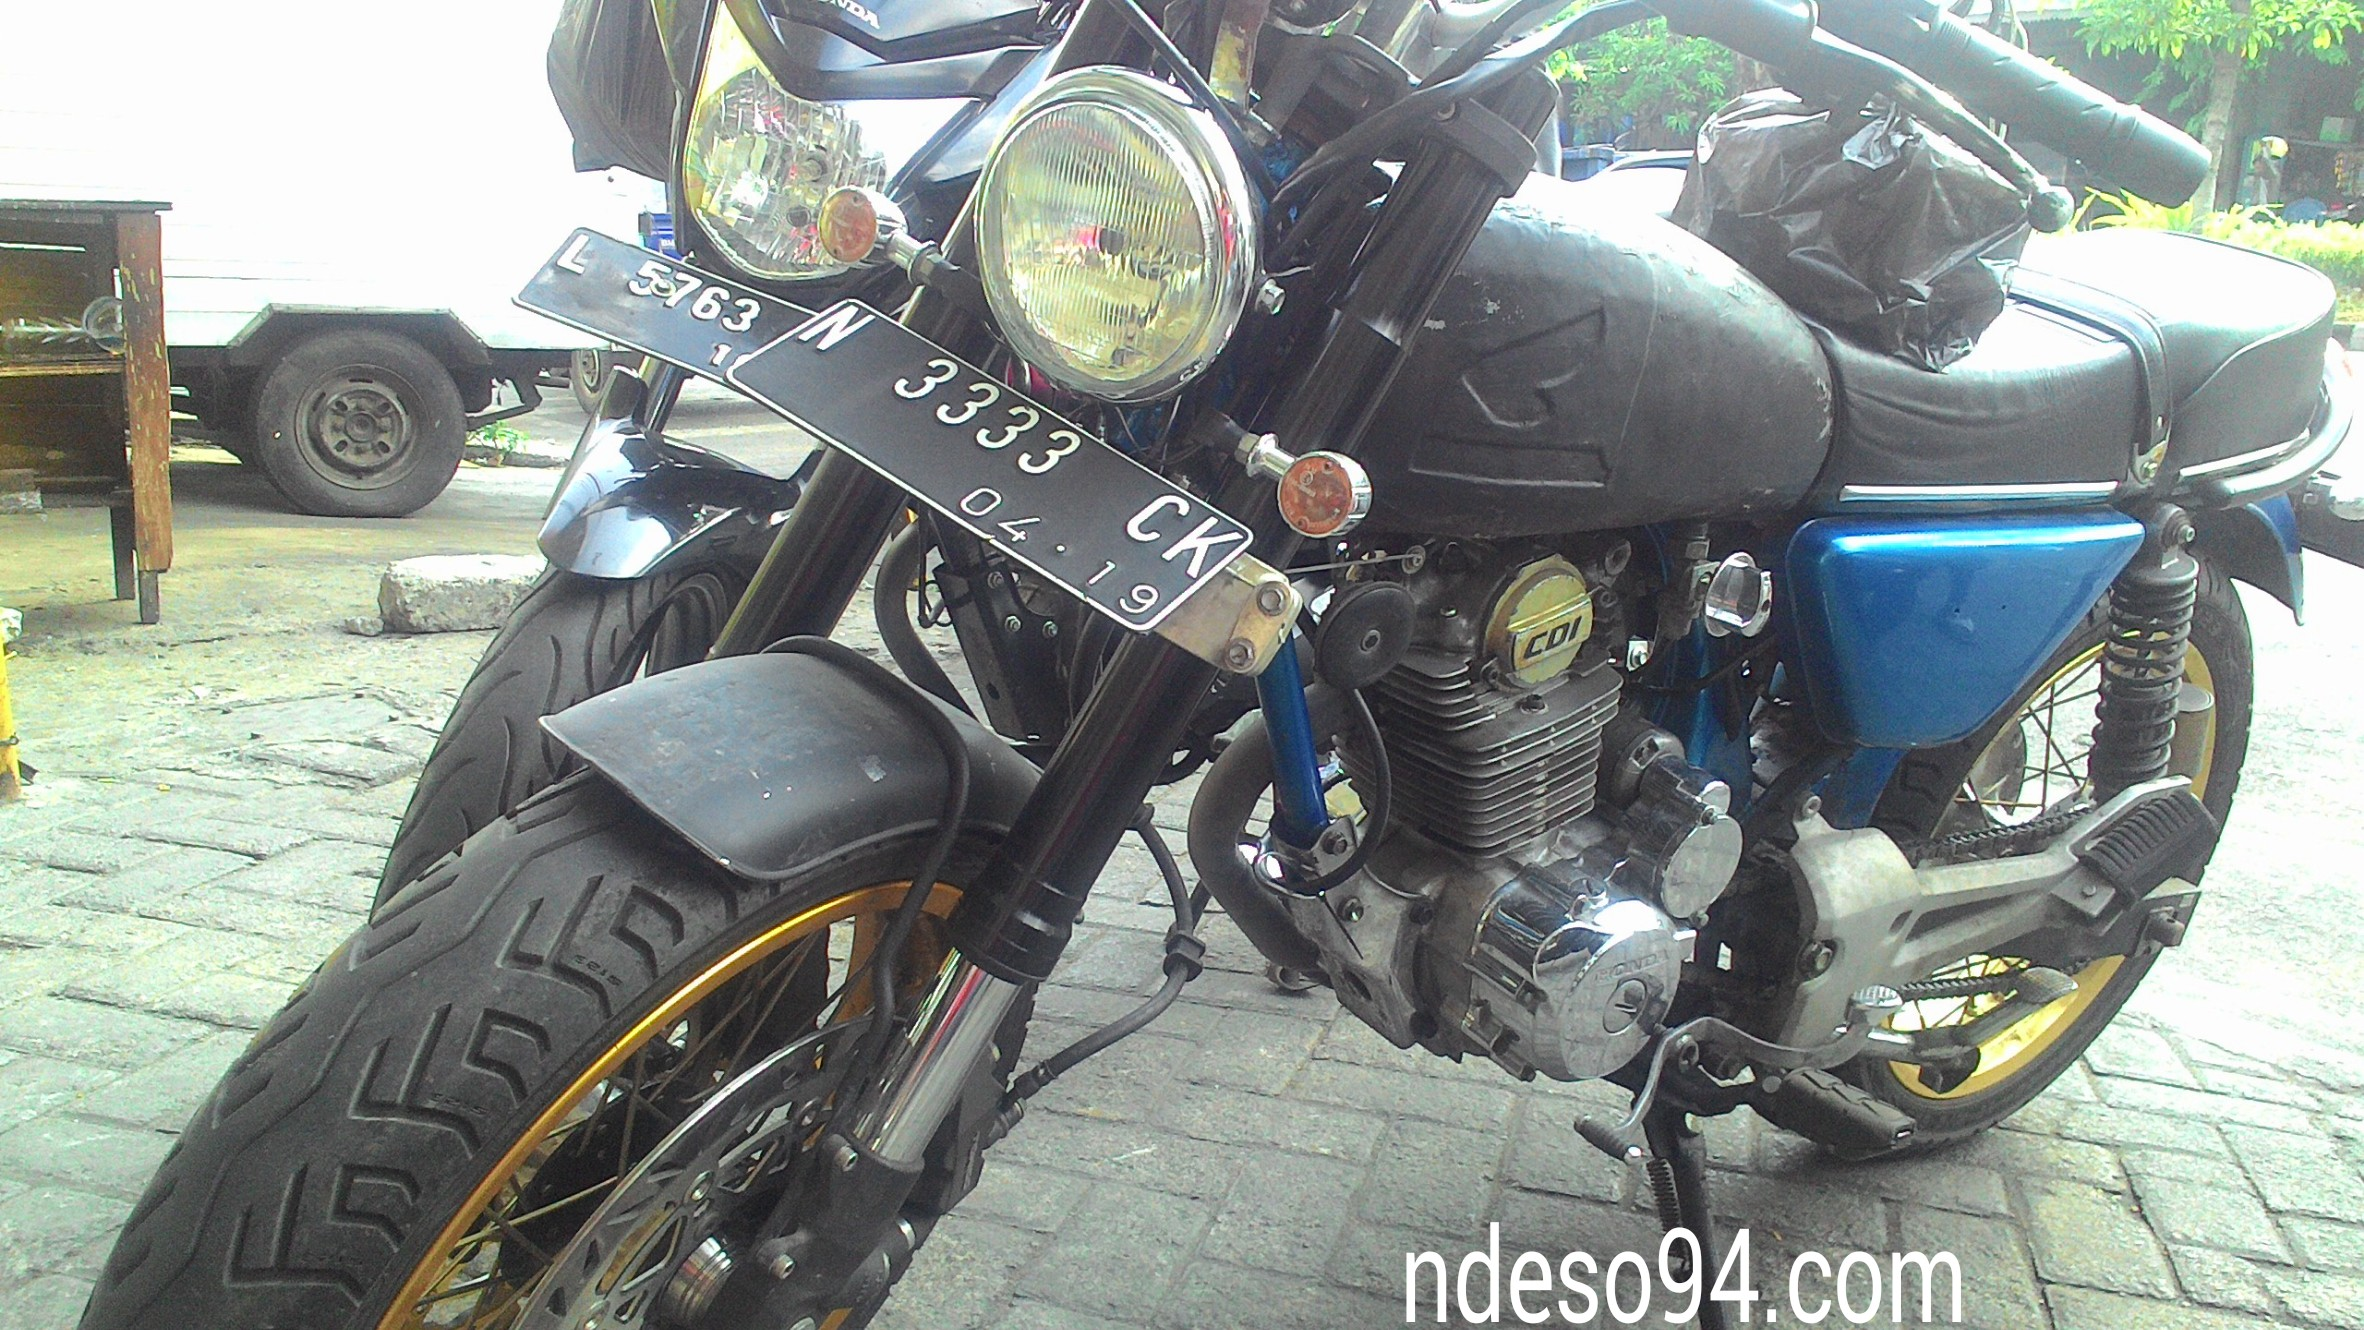 Tiger Japstyle Kaki Kaki USD Dan Double Disc Brake Kekar